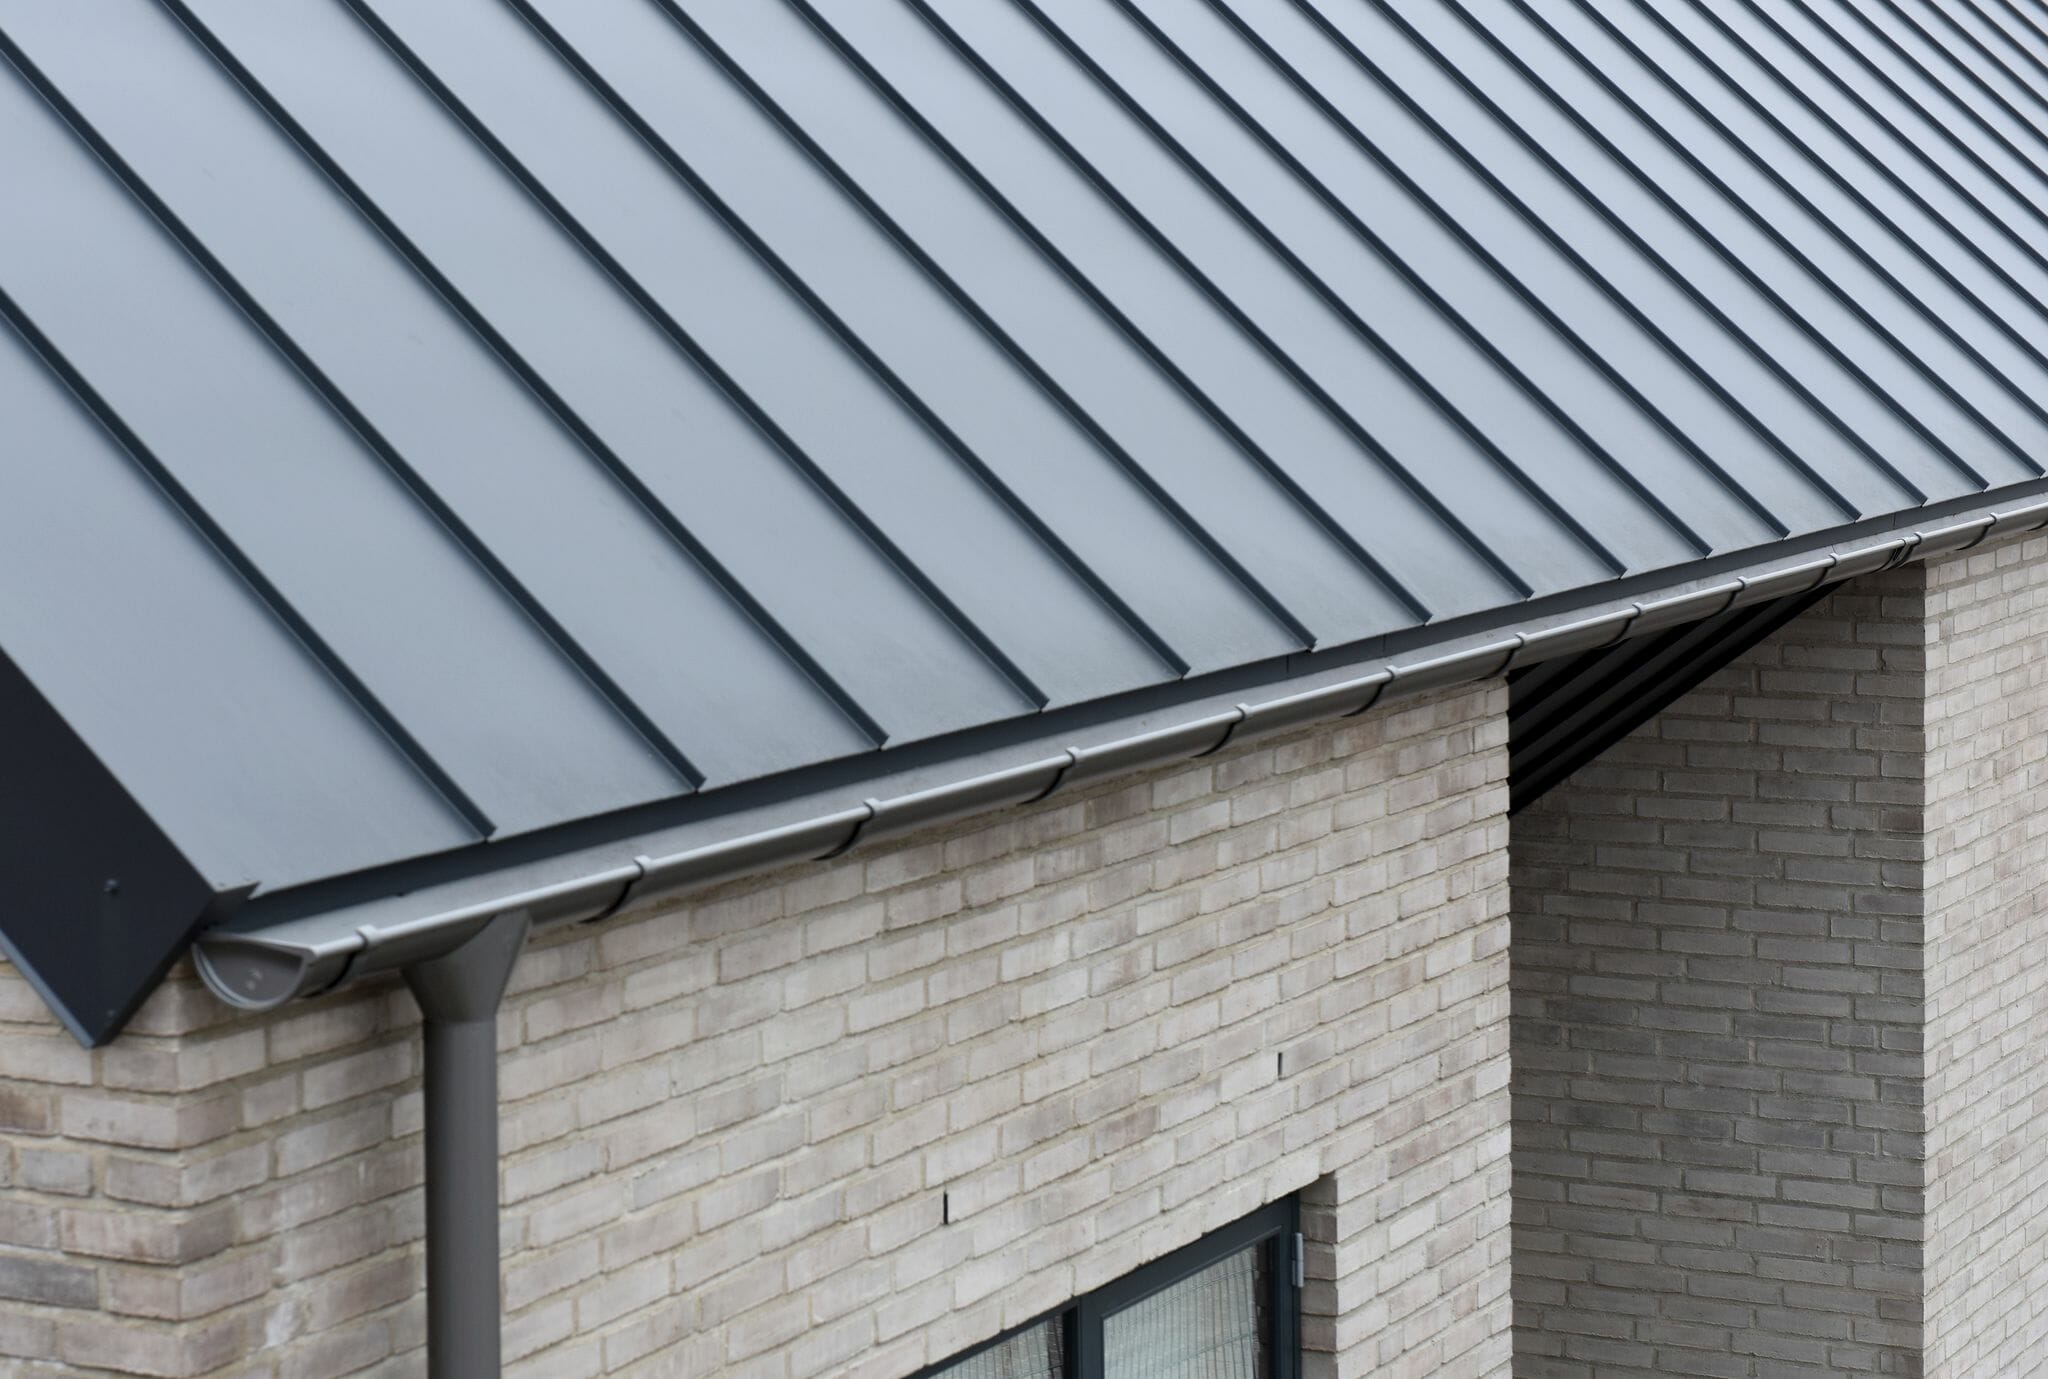 Anthracite Metallic with Lindab gutter